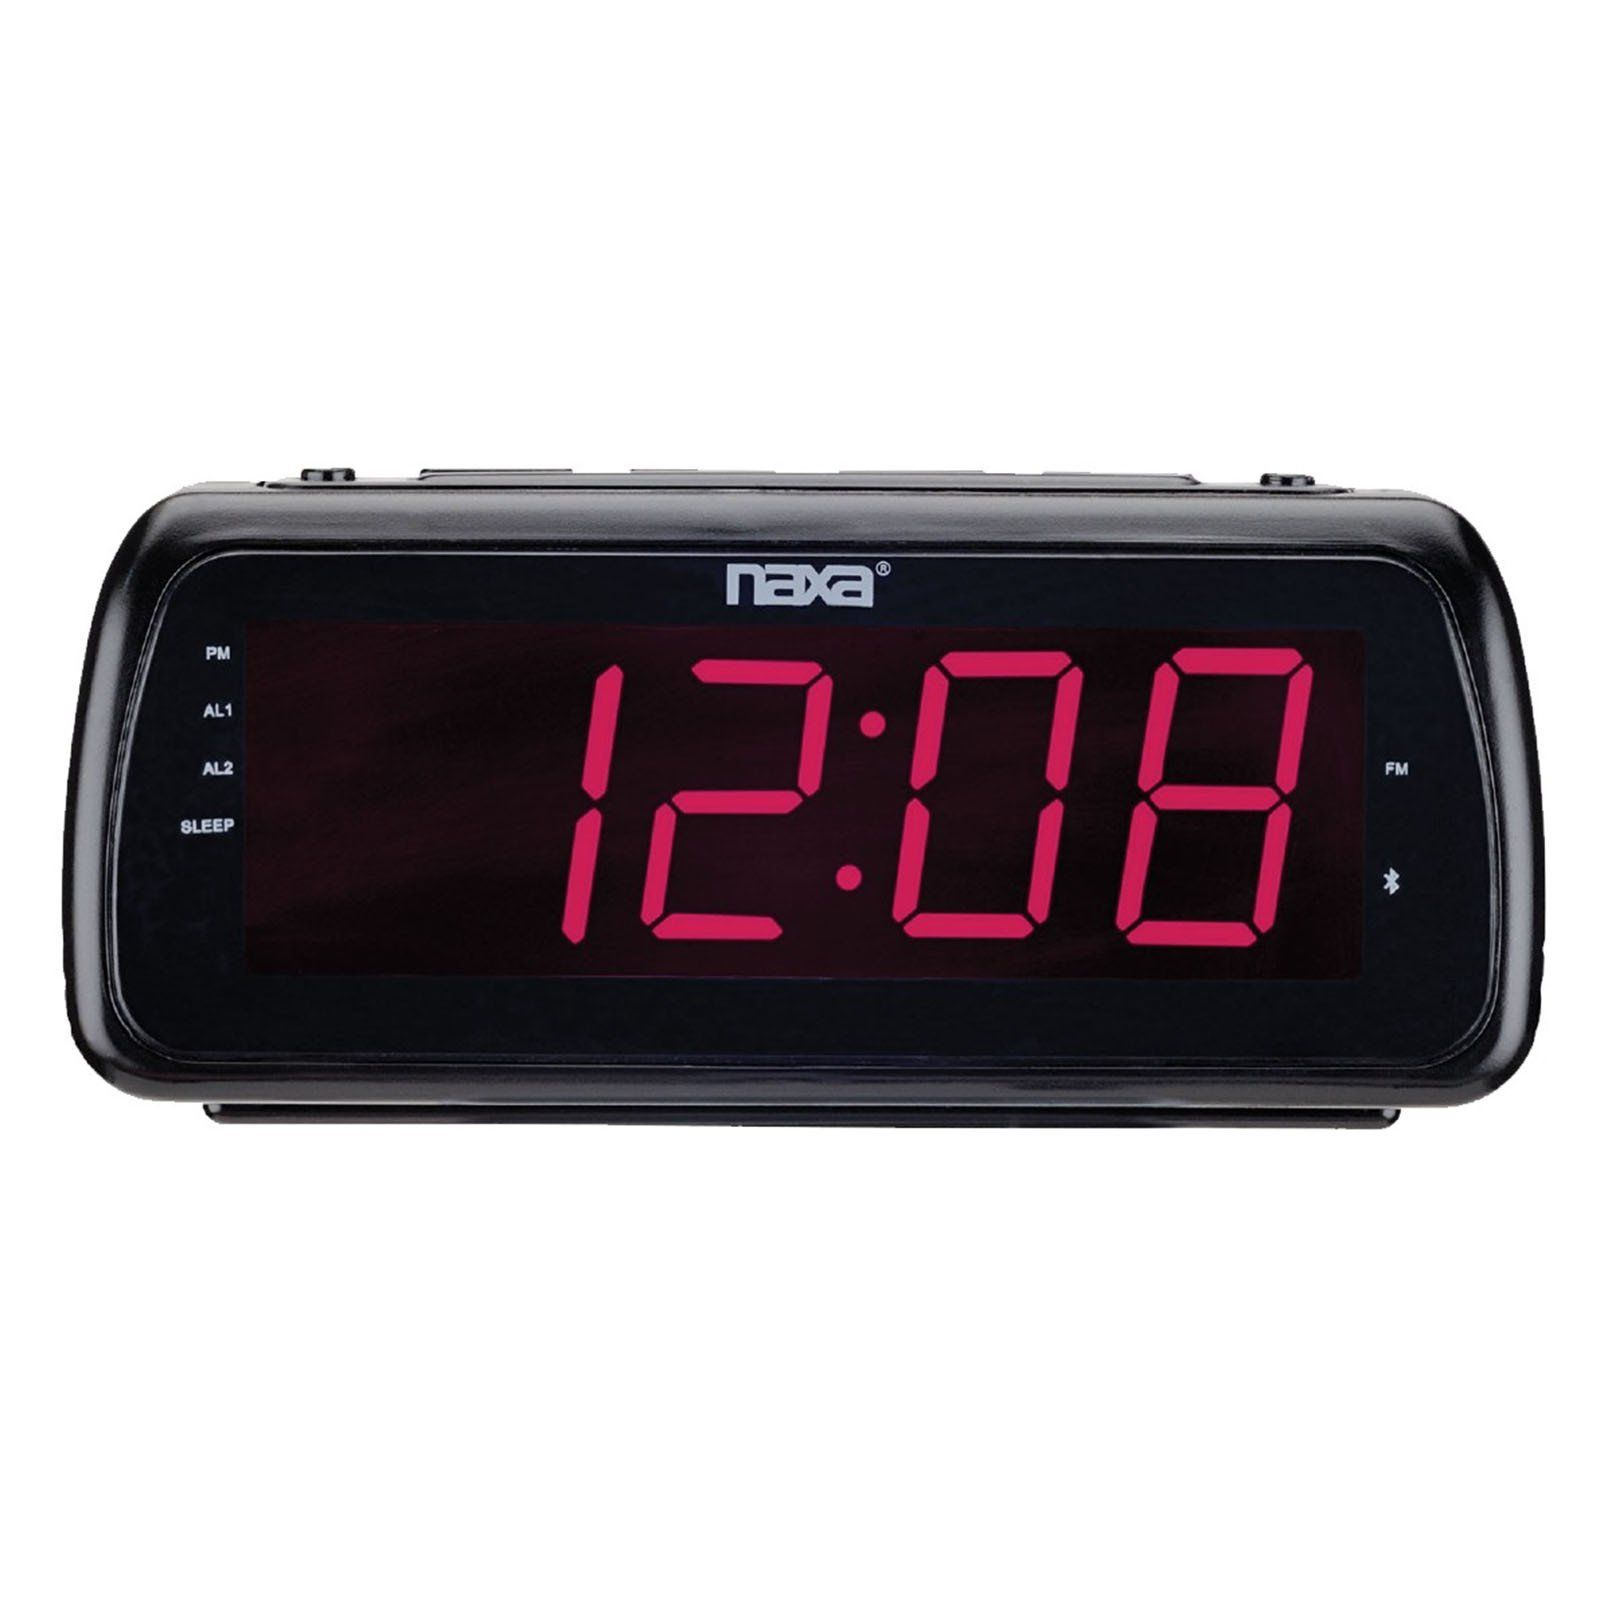 """Naxa Easy-Read Dual Alarm Clock Radio with USB Charge Port. * A dual alarm clock with a jumbo display, digital FM radio, and a handy USB charge port* Jumbo 1.8"""" high-contrast LED screen* FM radio with digital preset memory* Convenient USB charge port provides power for your cellphone or other mobile device* Two independent alarm timers, snooze, sleep, and wake to radio or buzzer functions* Time/alarm battery backup* Accessories included: AC power adapter* Power: AC 110/220V dual voltage, USB…"""